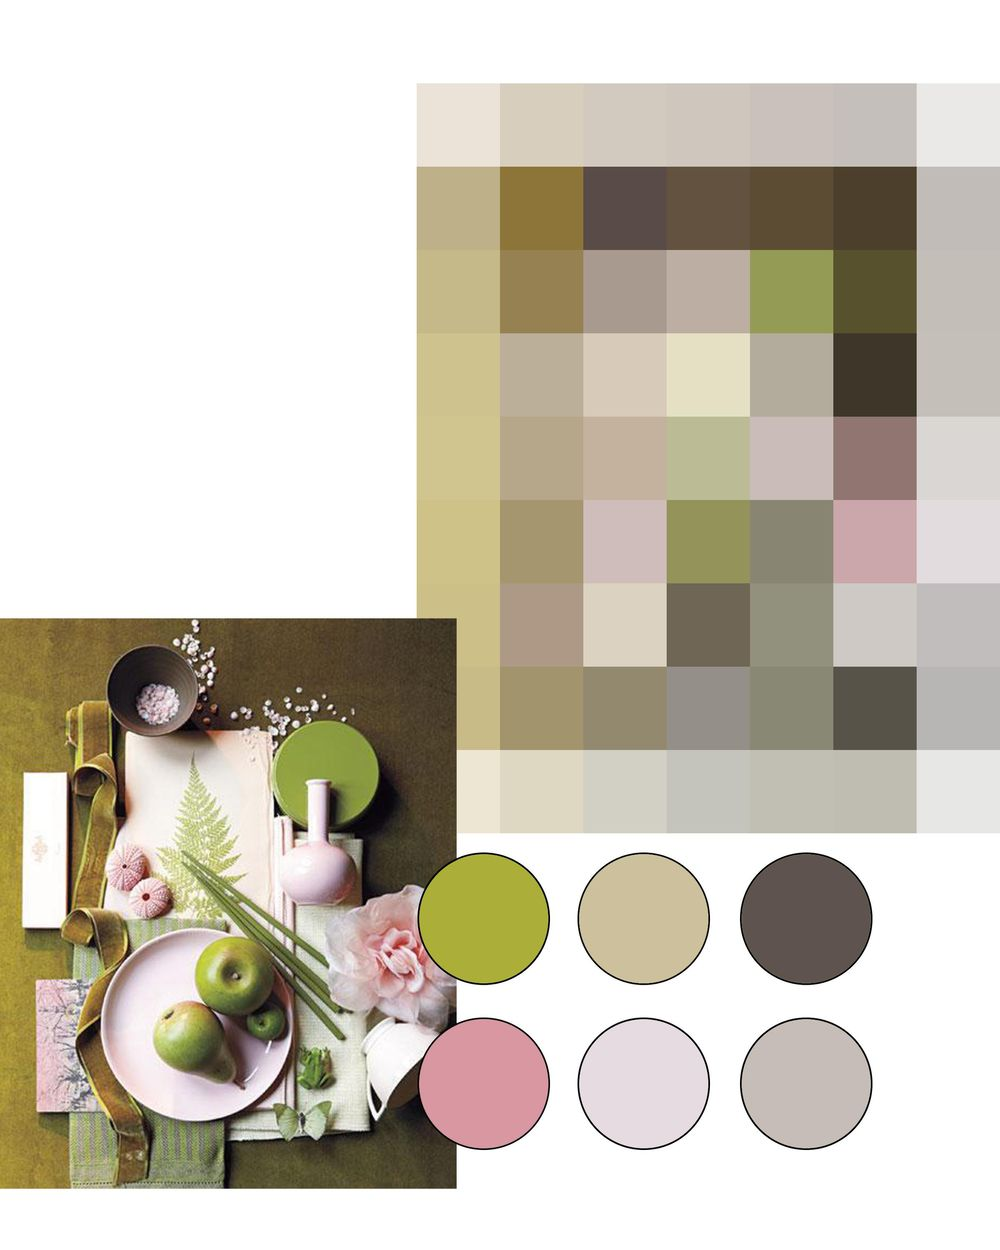 Green an pink colour palette - image 1 - student project